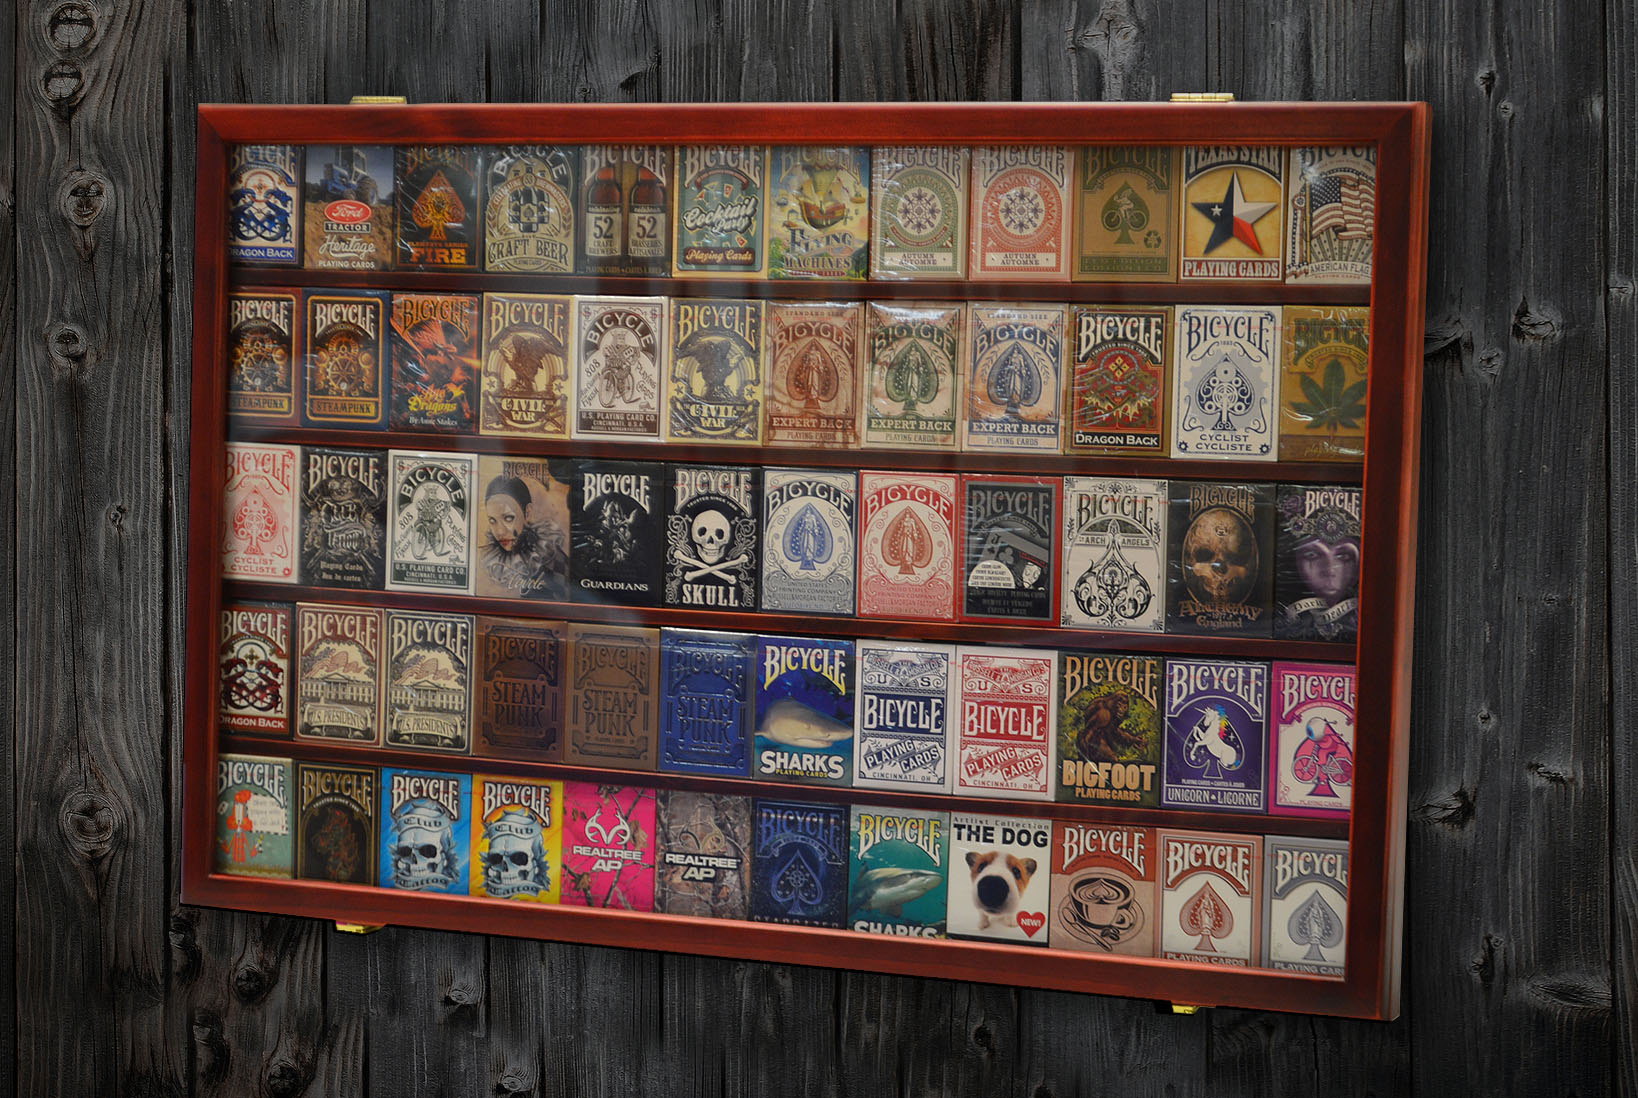 60 deck playing cards wooden display brand new mahogany color